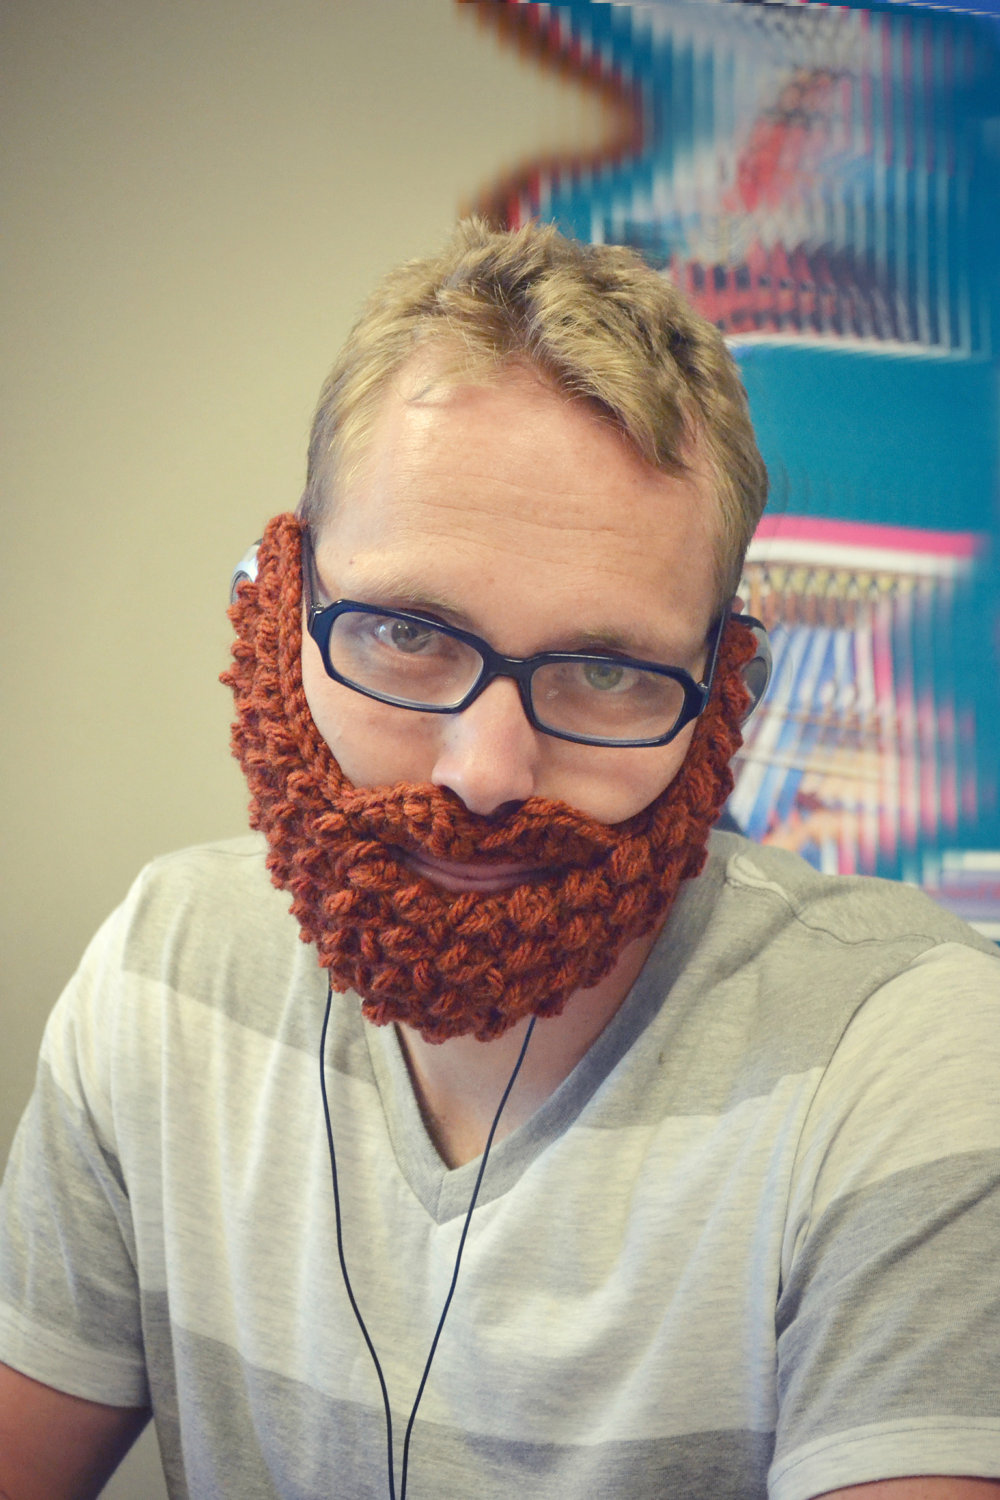 5-hillarious-wedding-gifts-for-groomsmen-knitted-beard.original